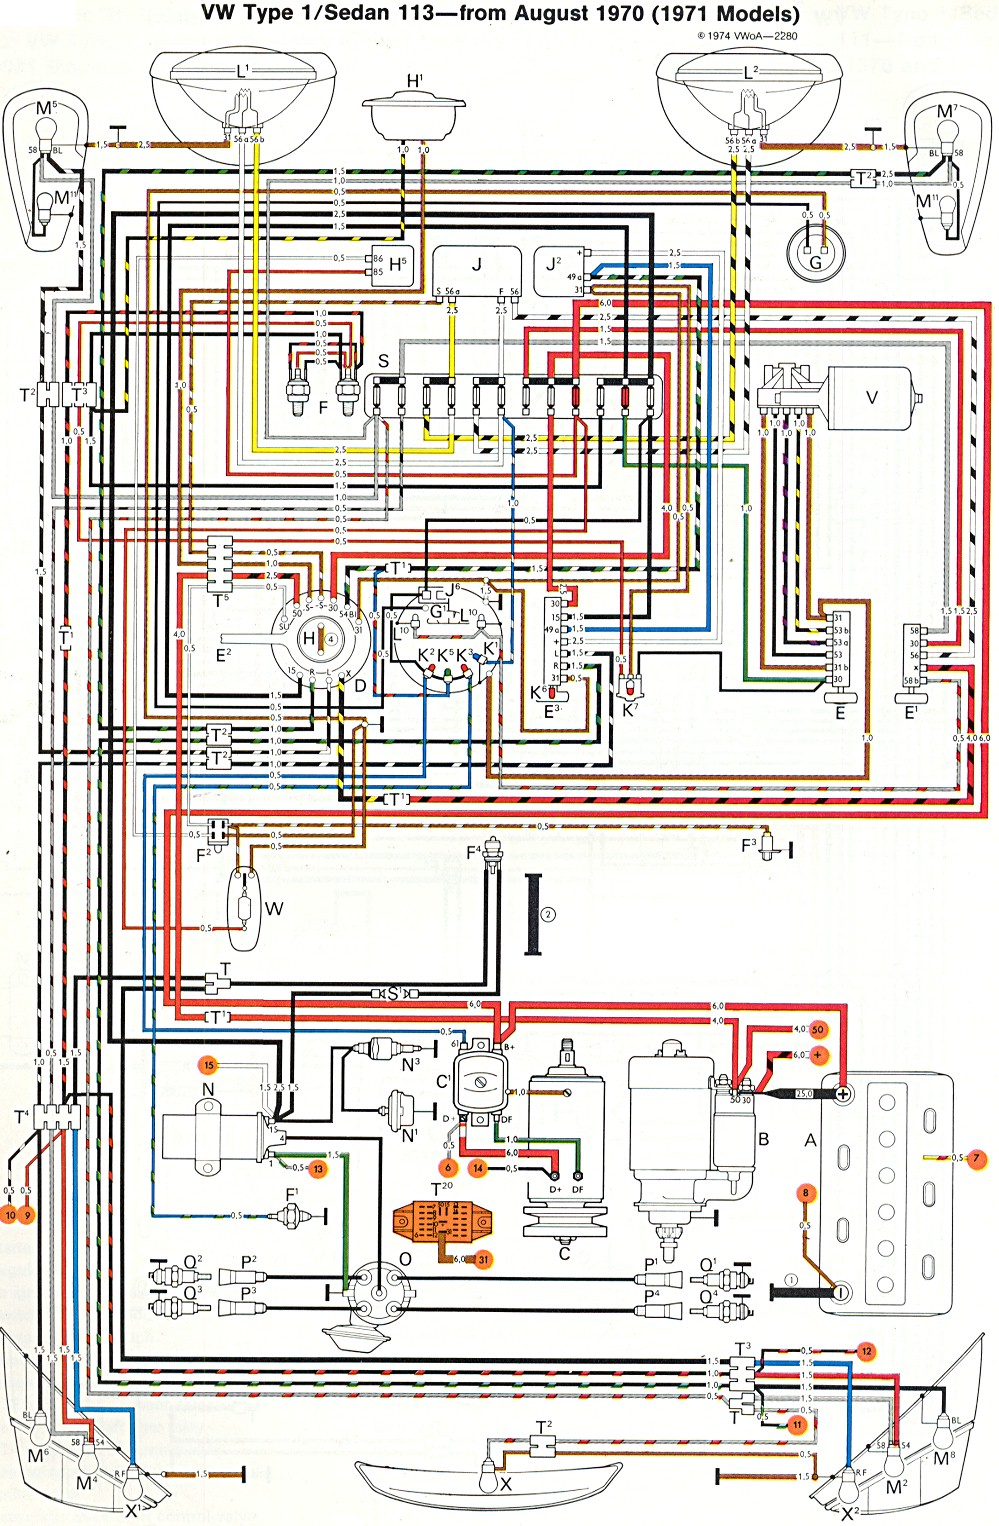 bug_super_71 1971 super beetle wiring diagram thegoldenbug com 1972 beetle wiring diagram at letsshop.co